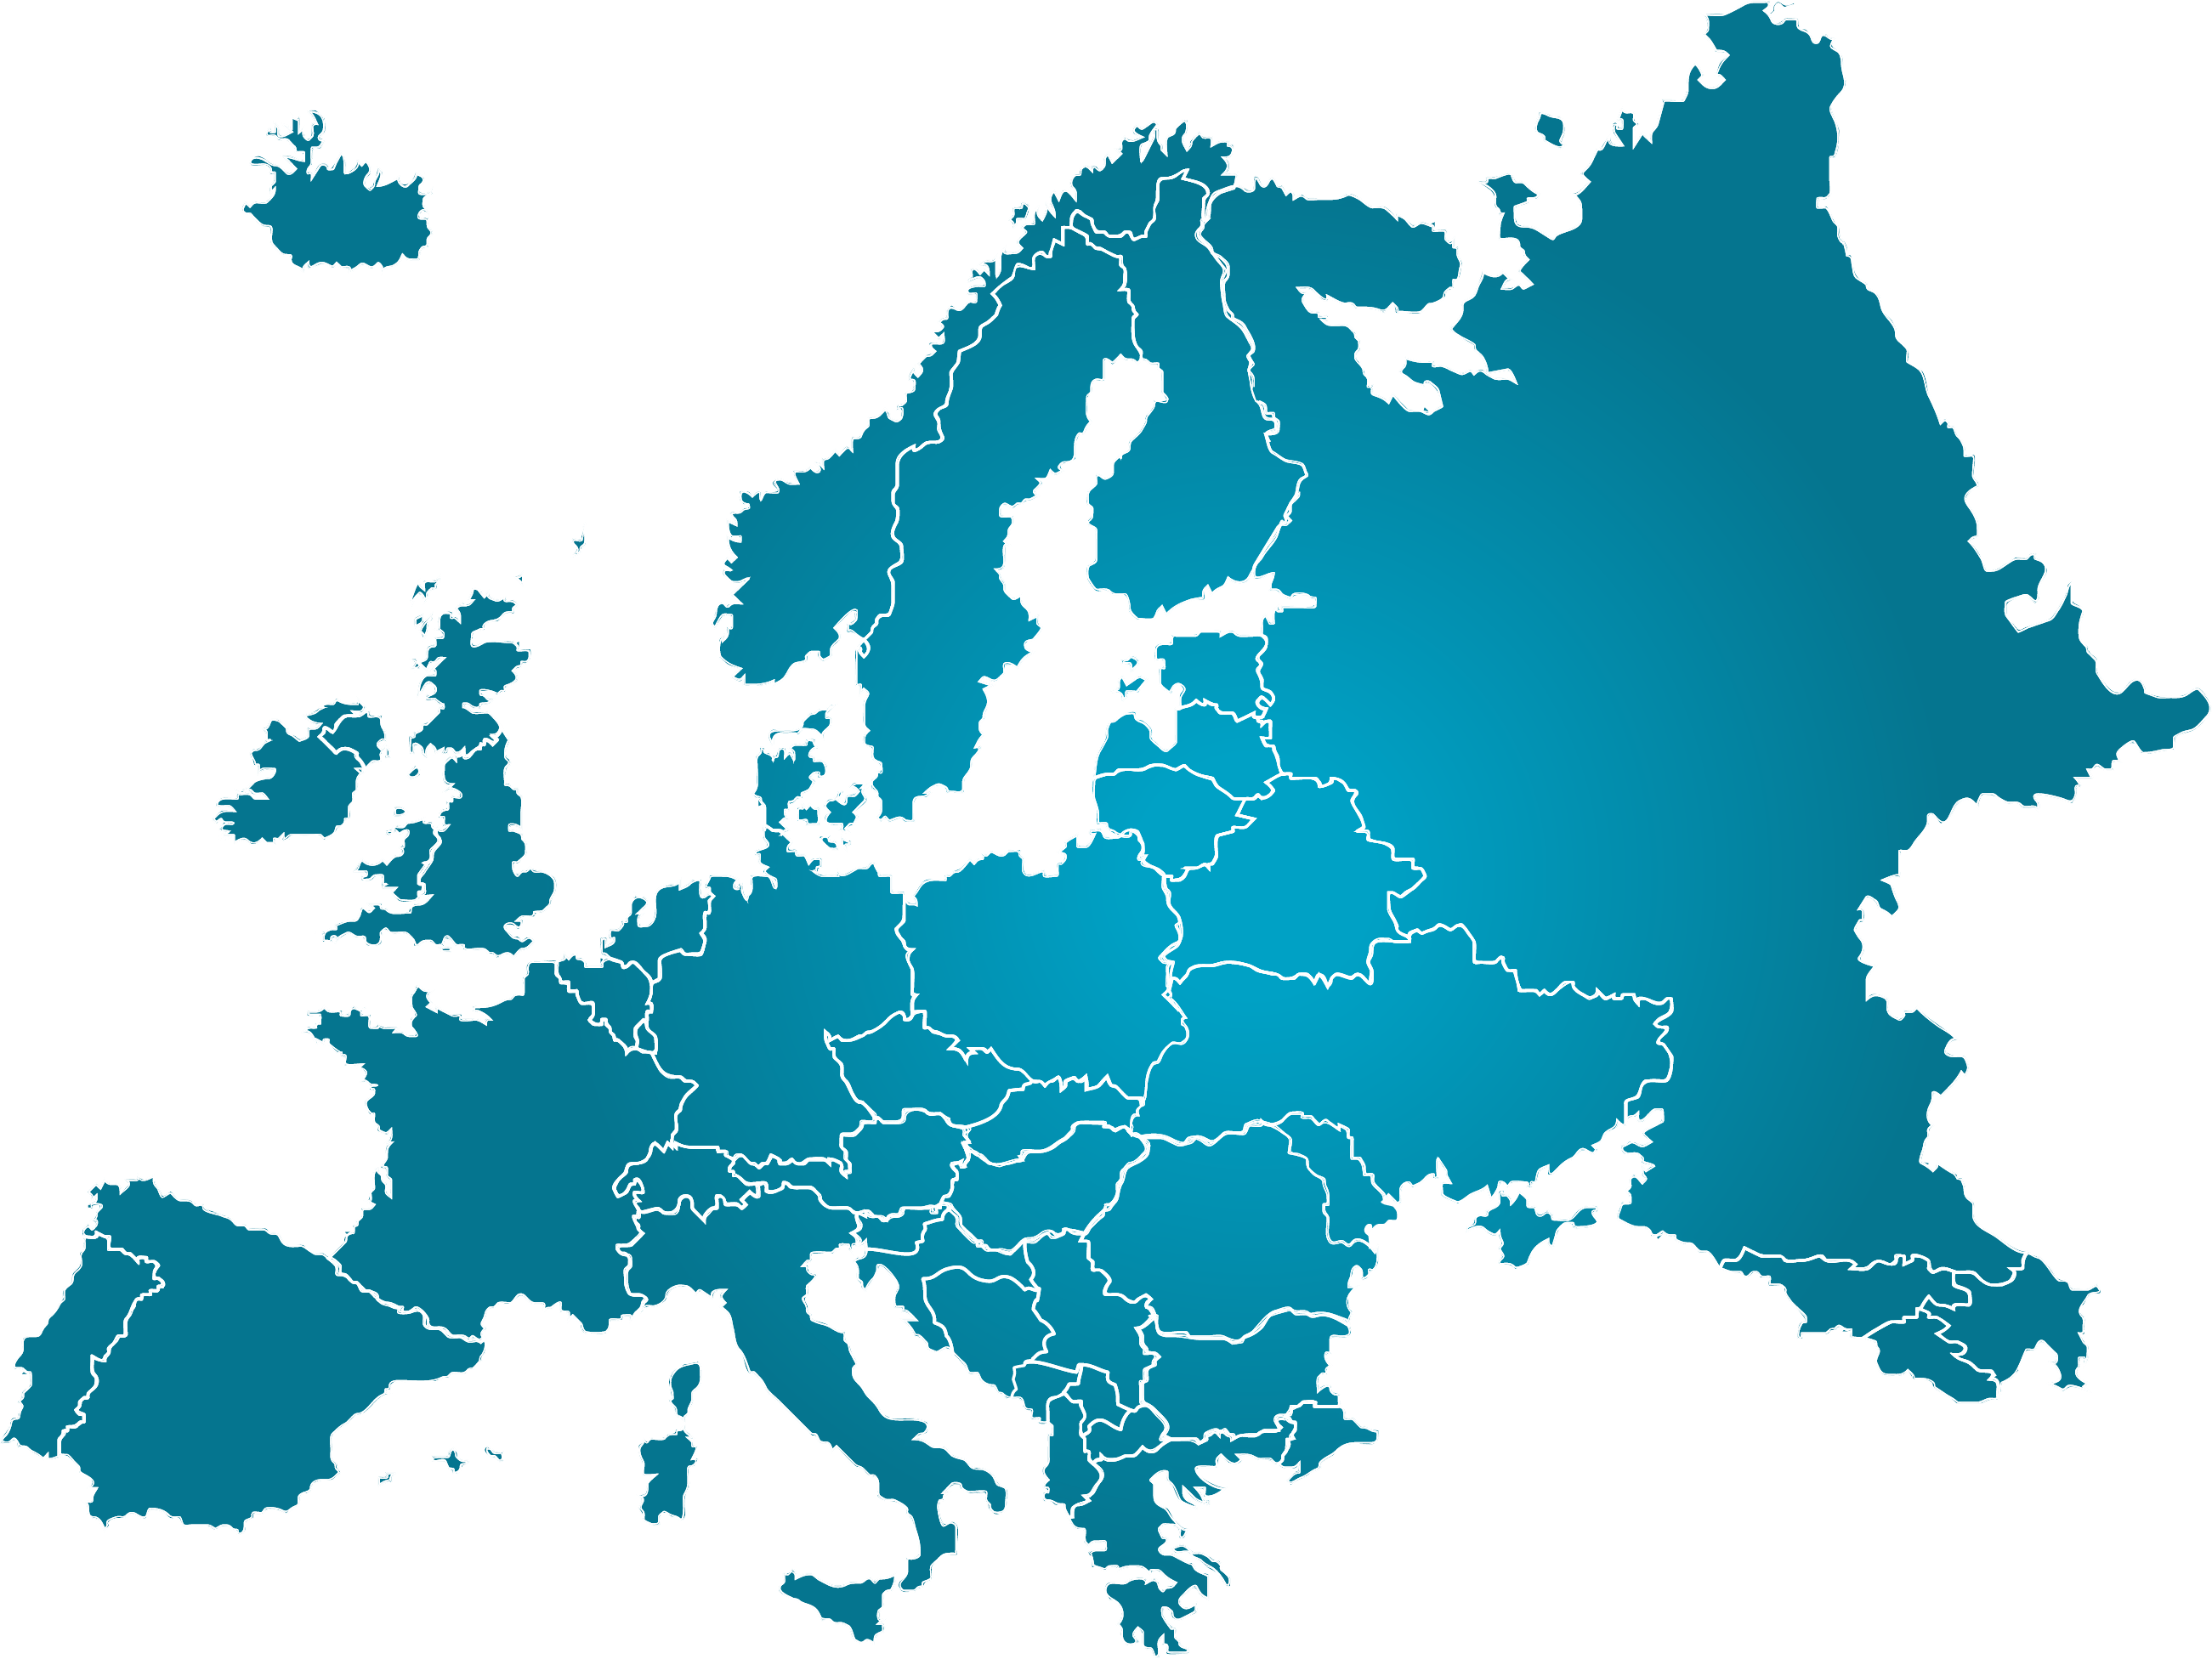 Europe clipart labled. Map transparent png stickpng